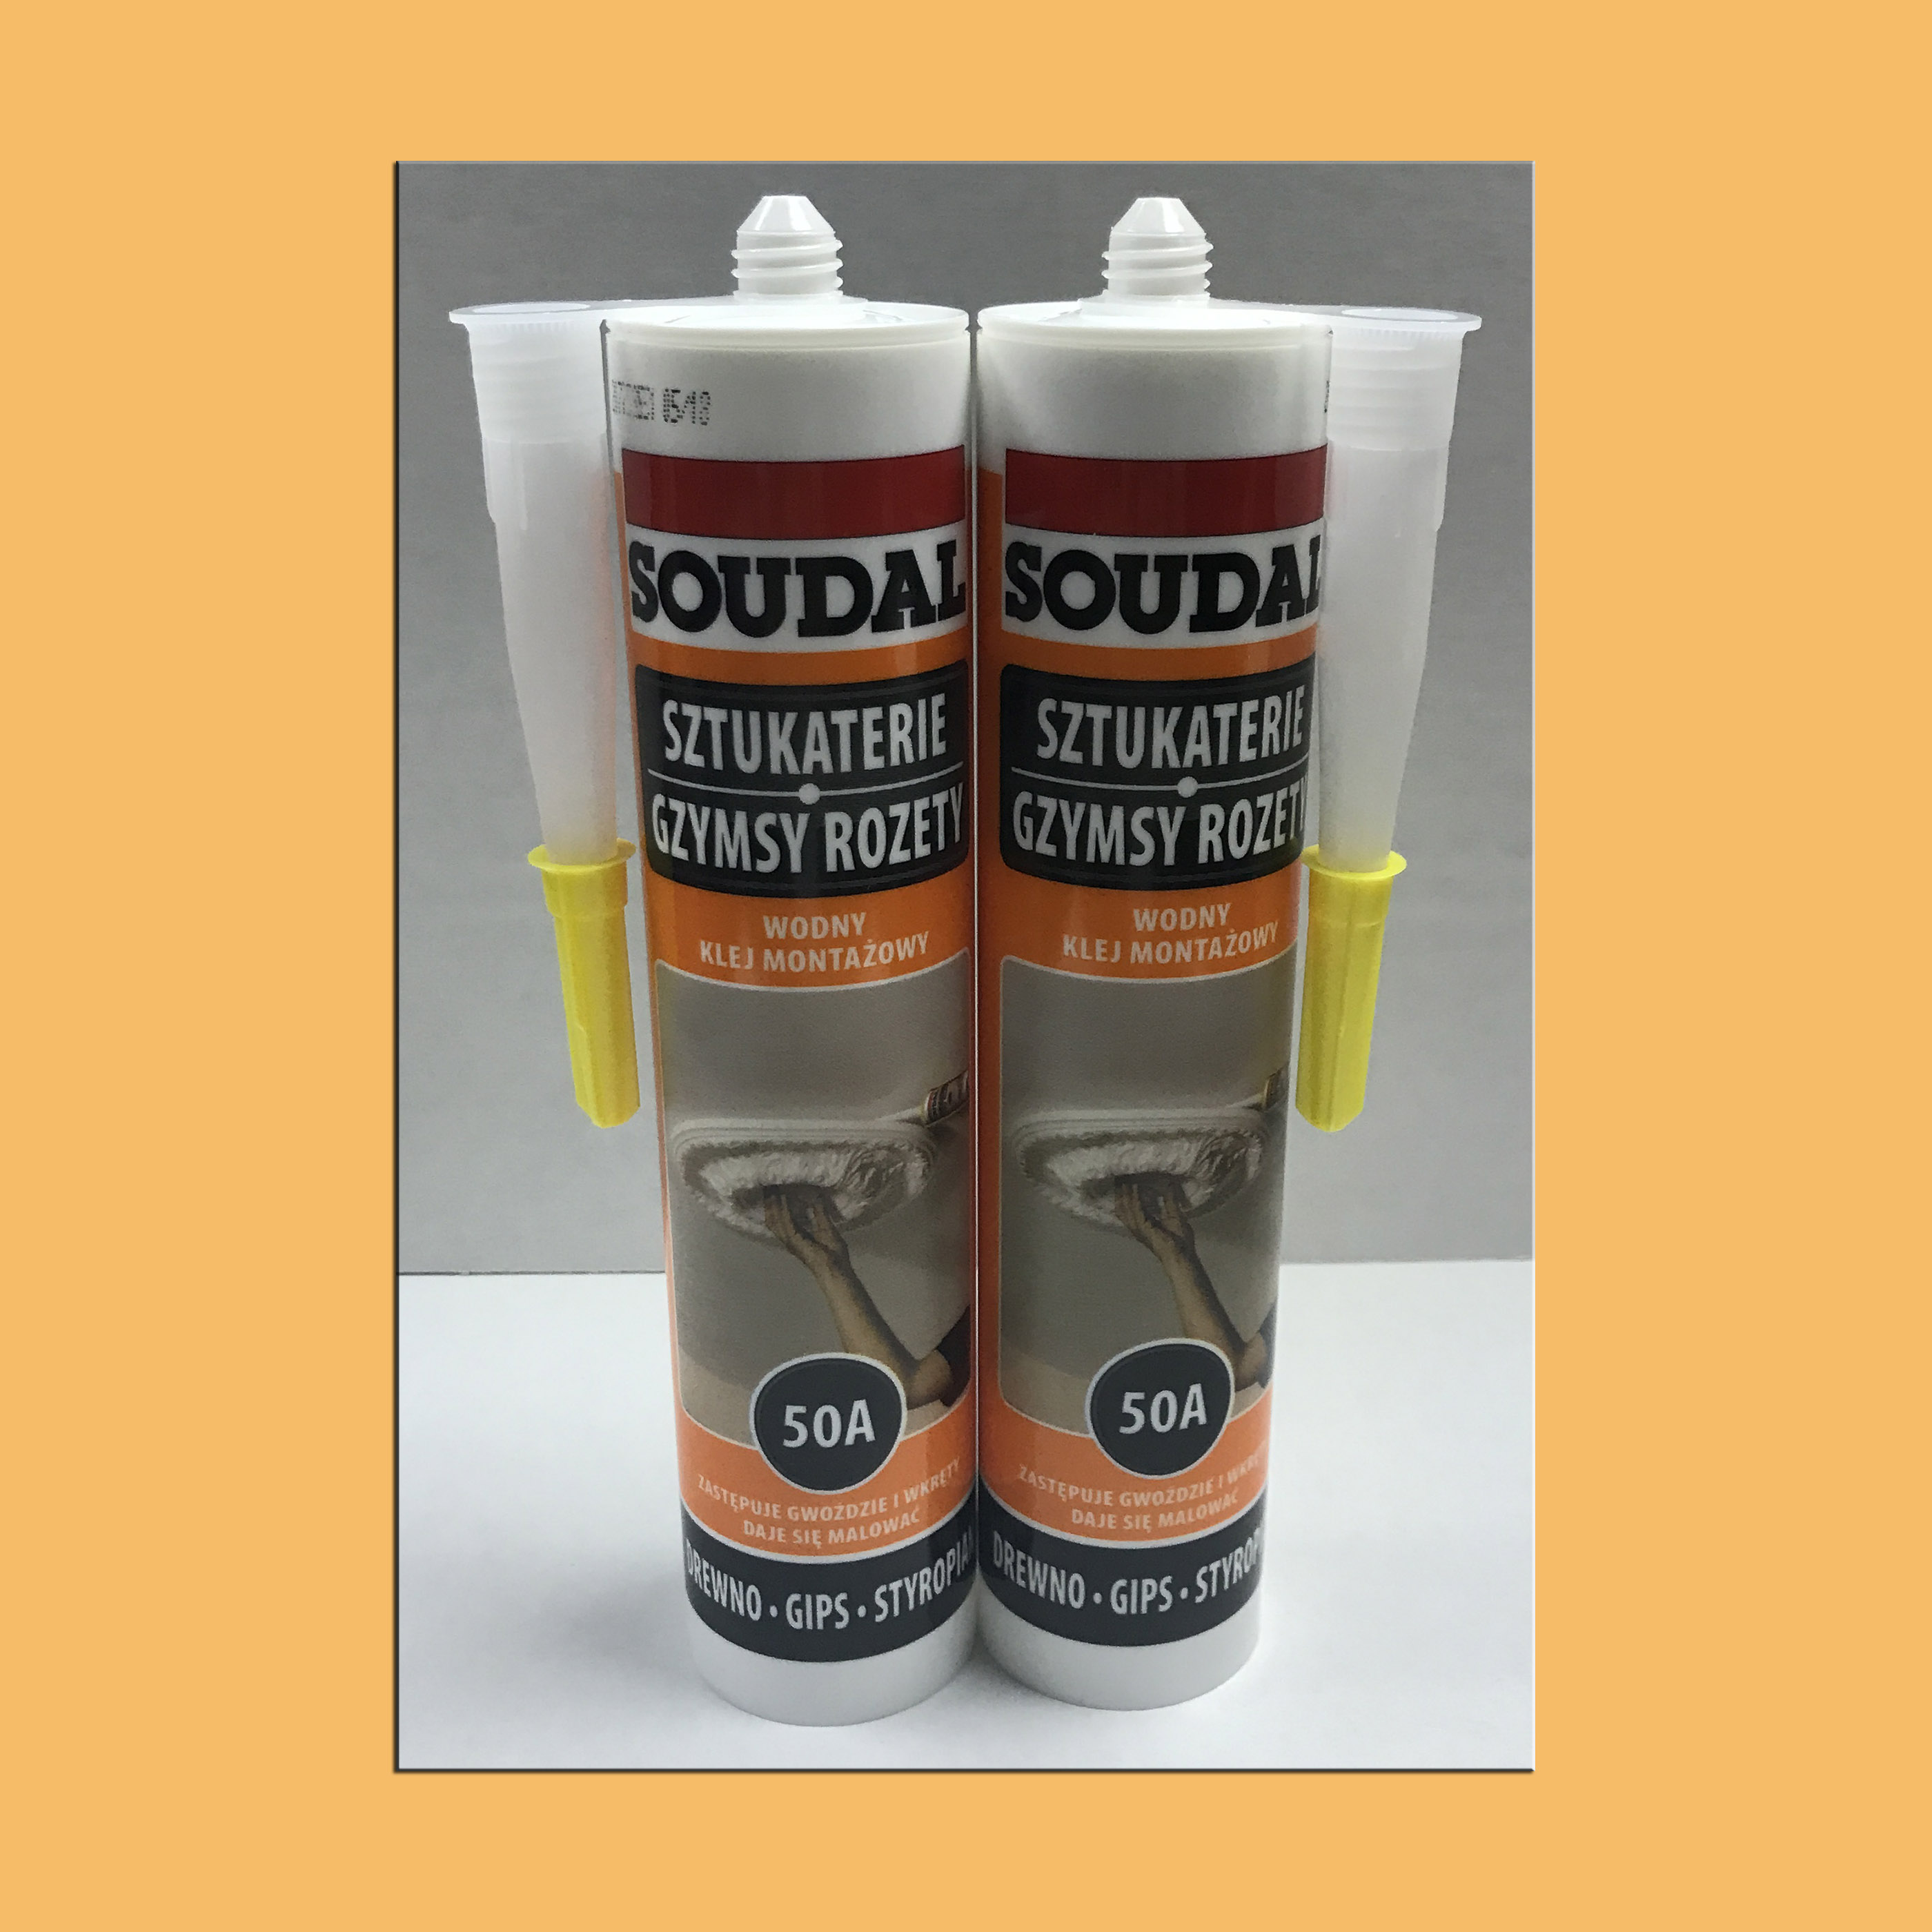 Soudal 50a Styrofoam Adhesive Perfect For Ceiling Tiles Antique Ceilings Glue Up And Drop In Grid